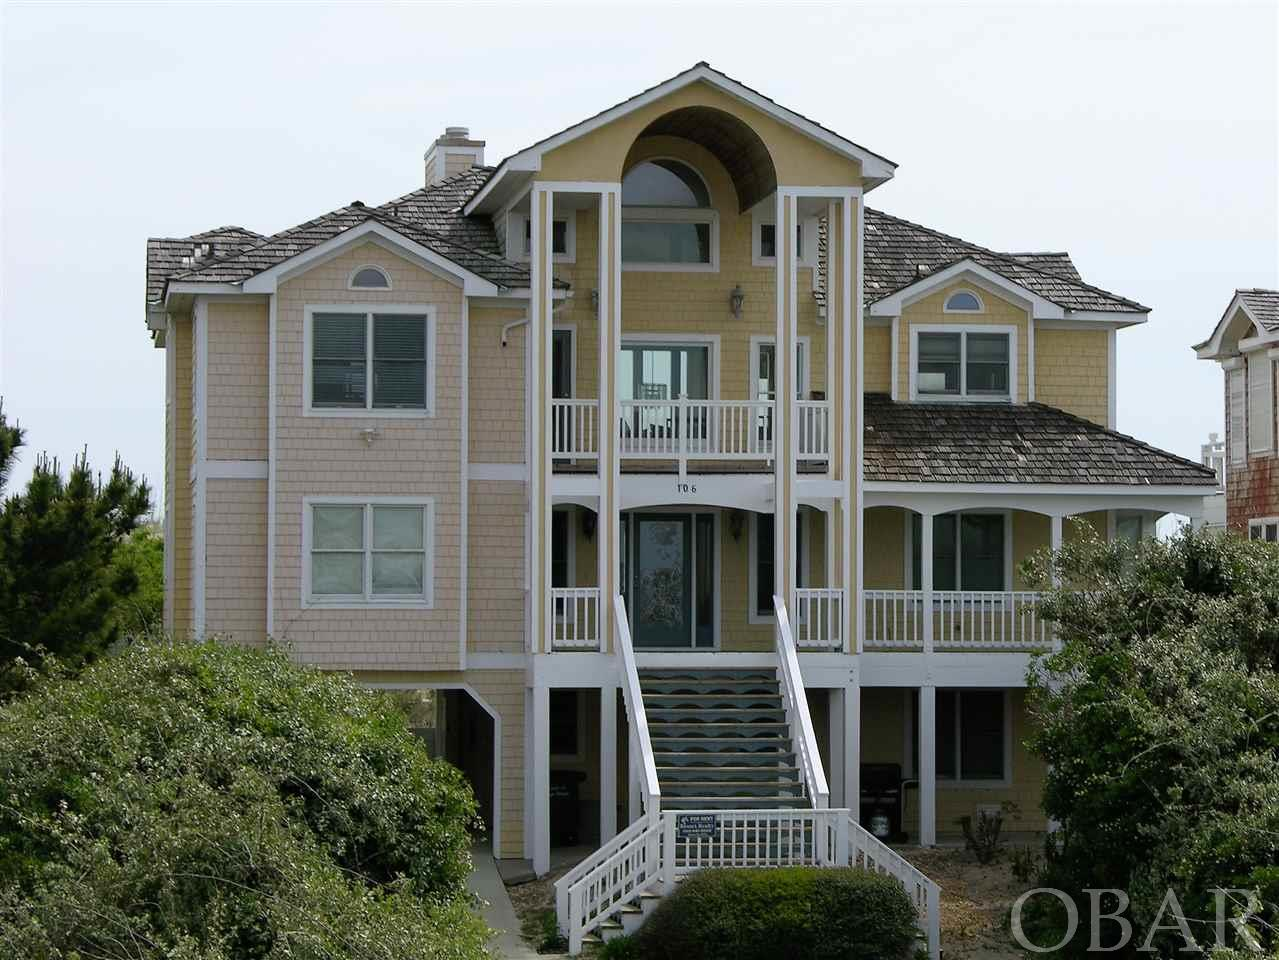 106 Sandcastle Court,Nags Head,NC 27959,7 Bedrooms Bedrooms,4 BathroomsBathrooms,Residential,Sandcastle Court,100416